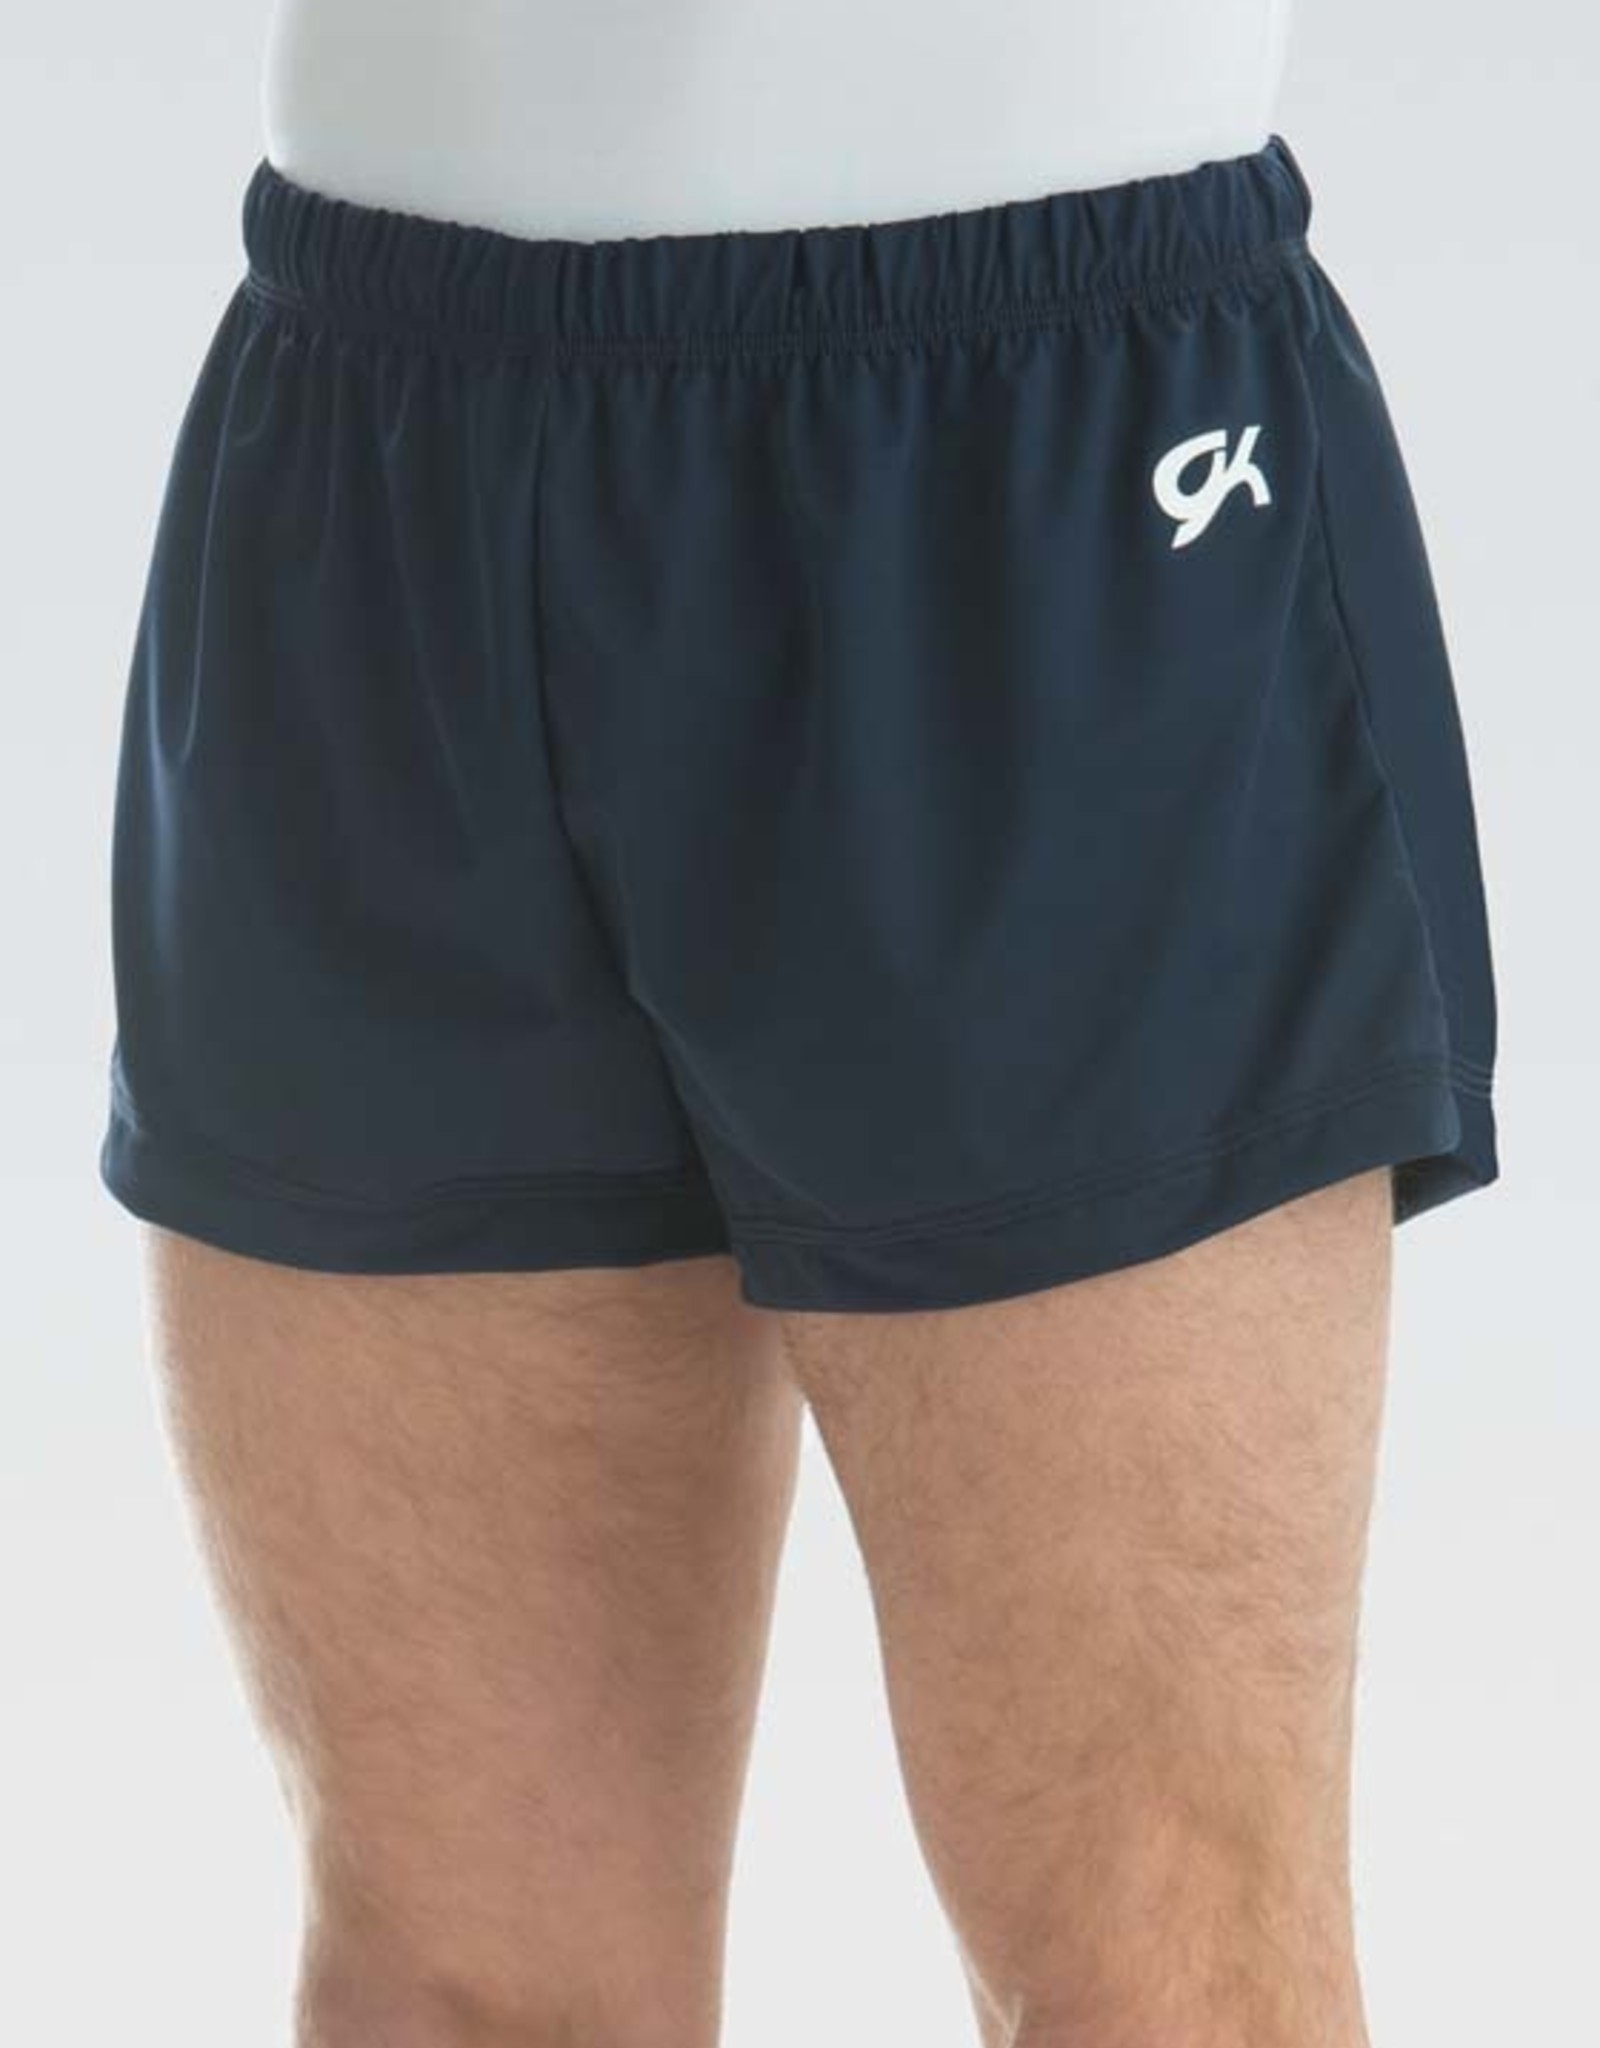 GK Elite 1812M - HOMME  SHORTS